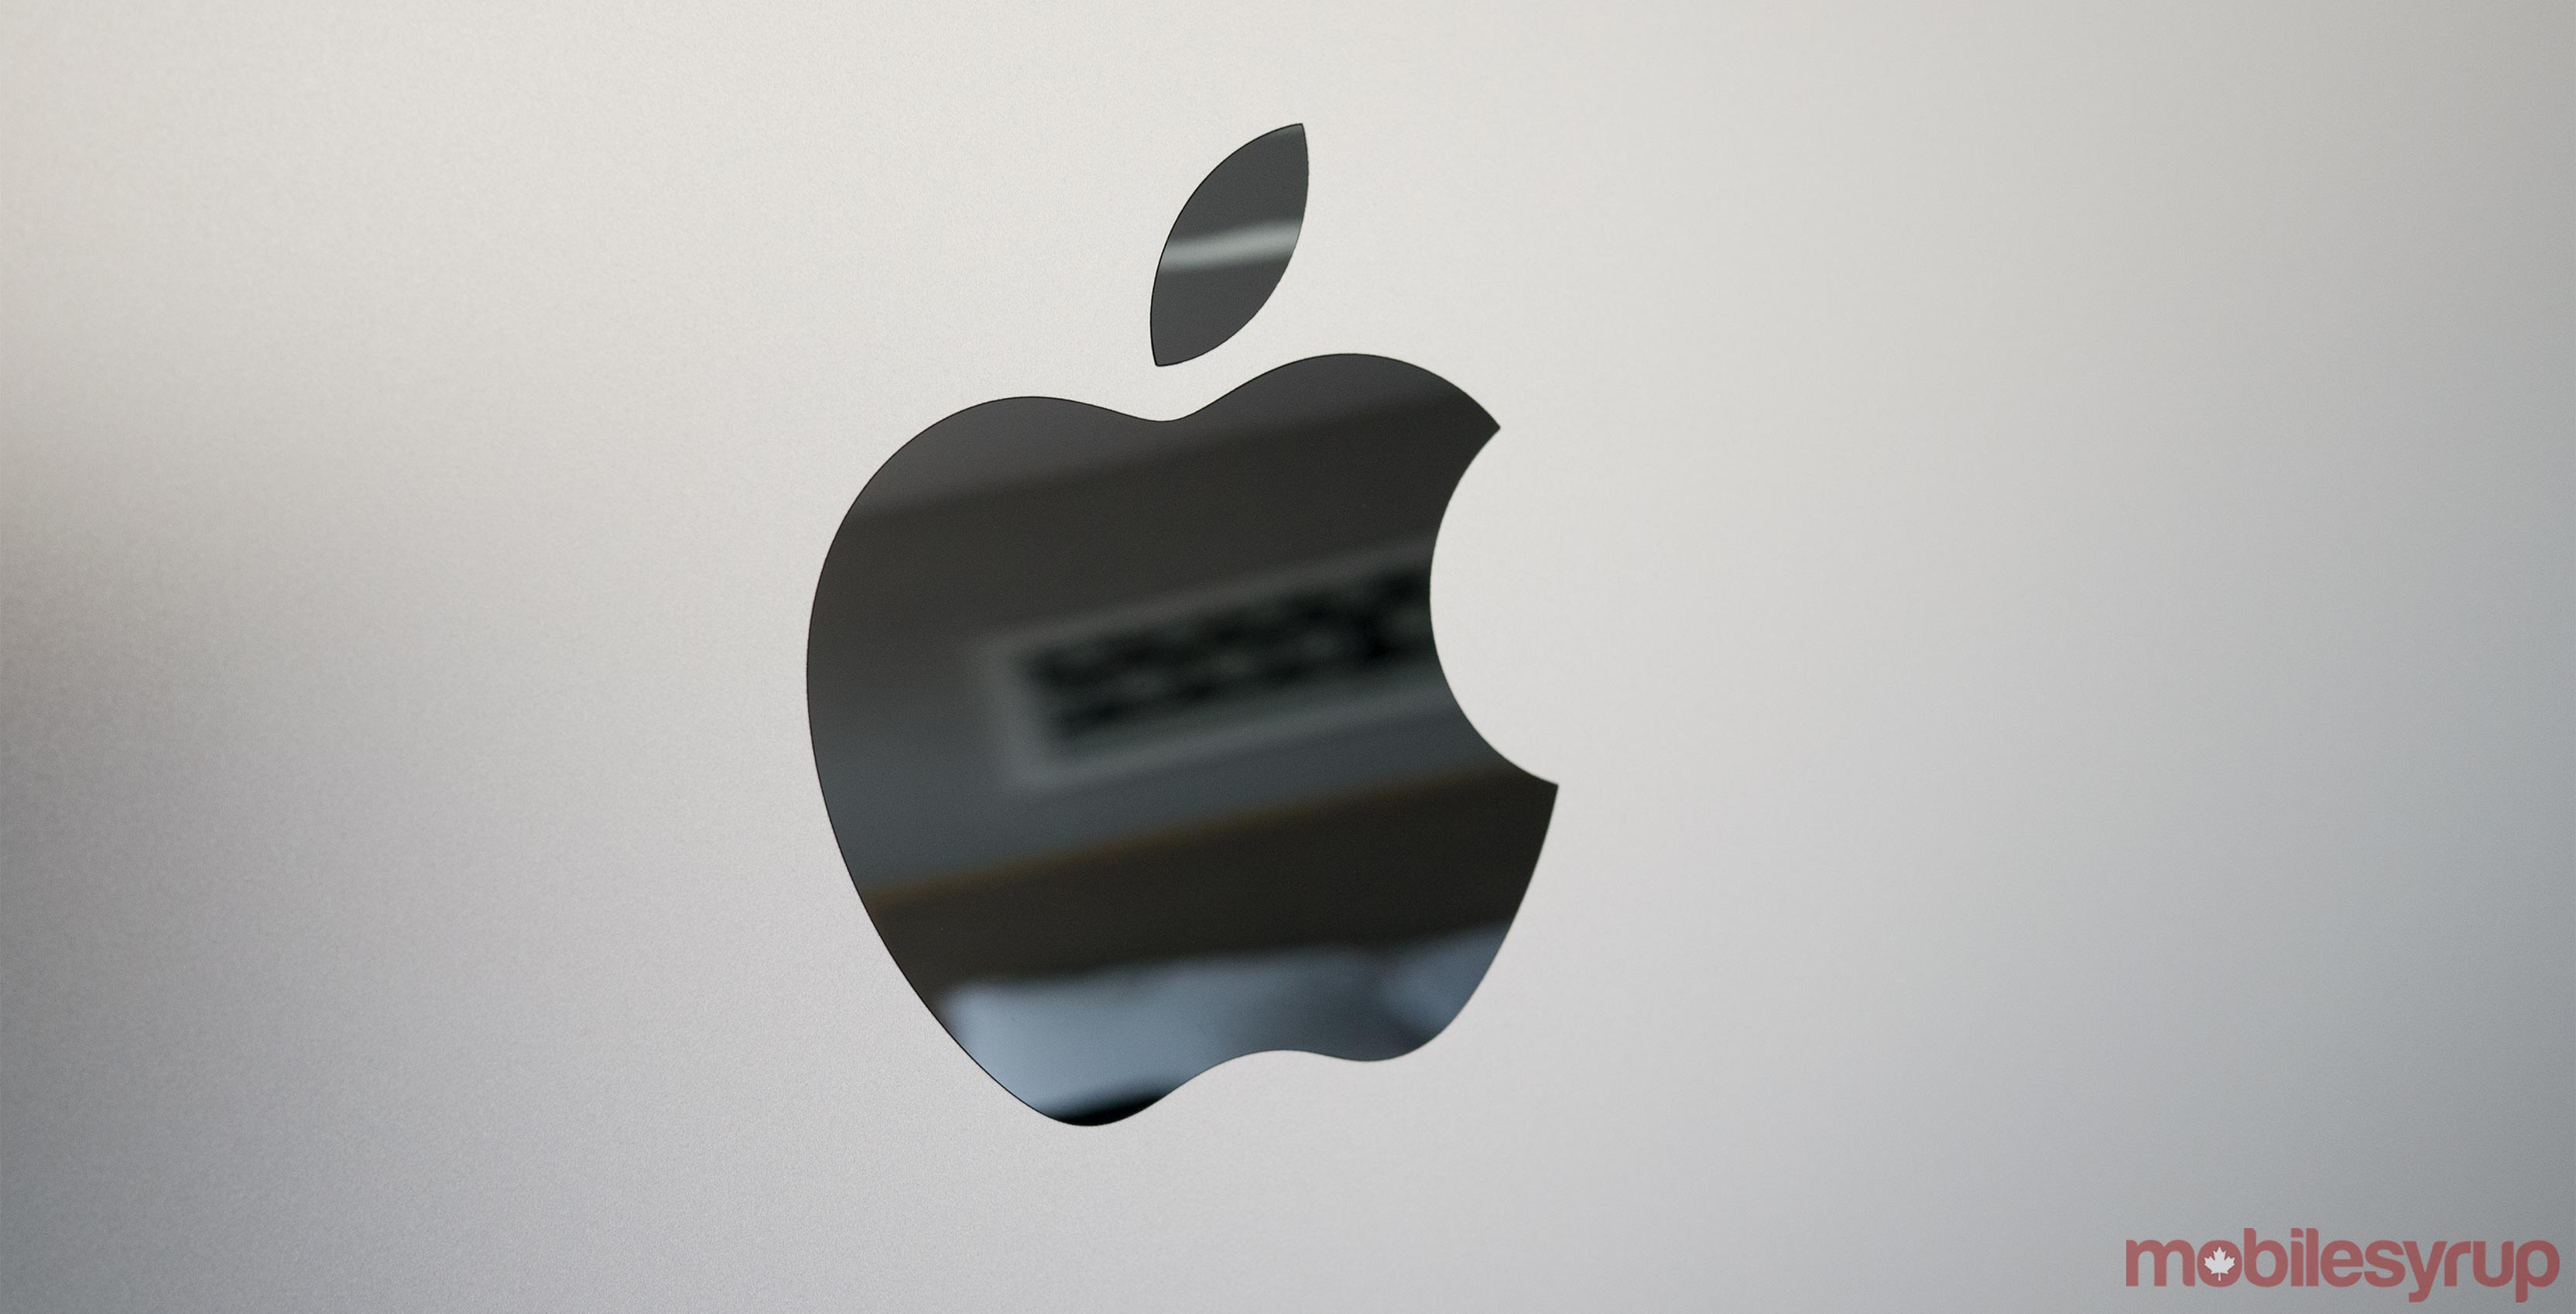 An image showing the Apple logo